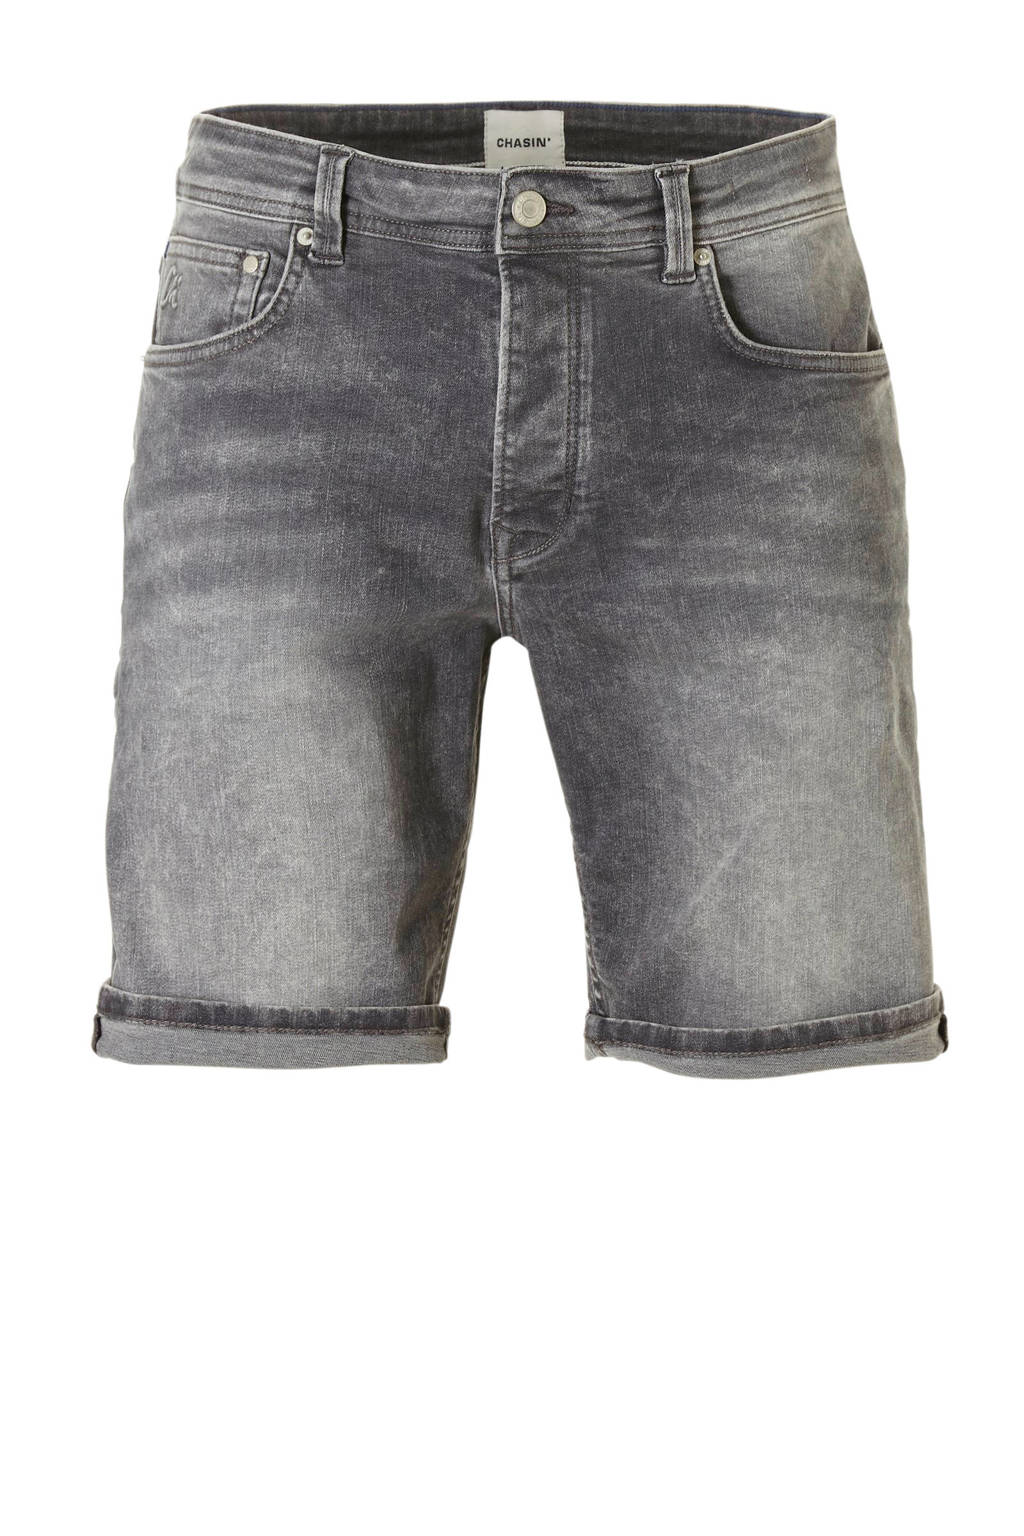 Chasin' tapered fit jeans short Ross, Grijs